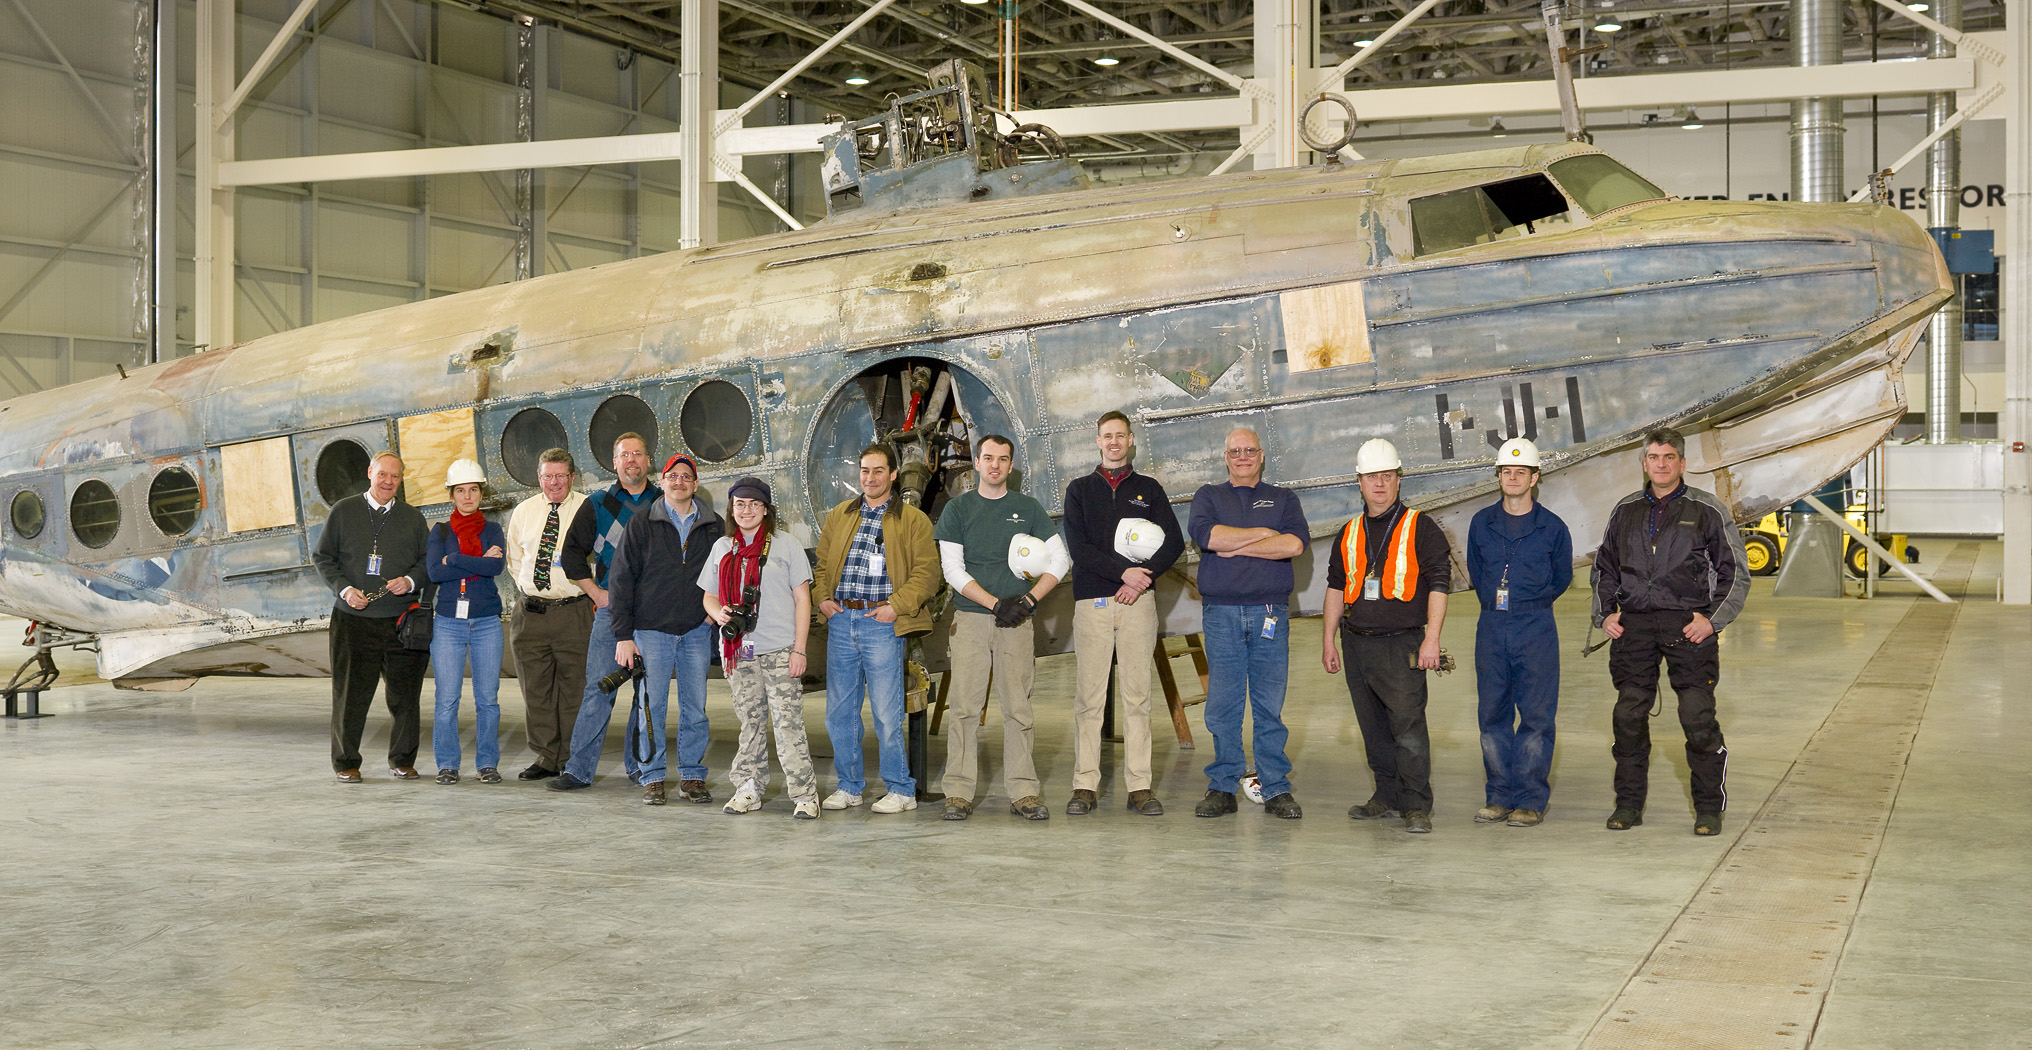 Sikorsky JRS-1 and Move Team in the Mary Baker Engen Restoration Hangar